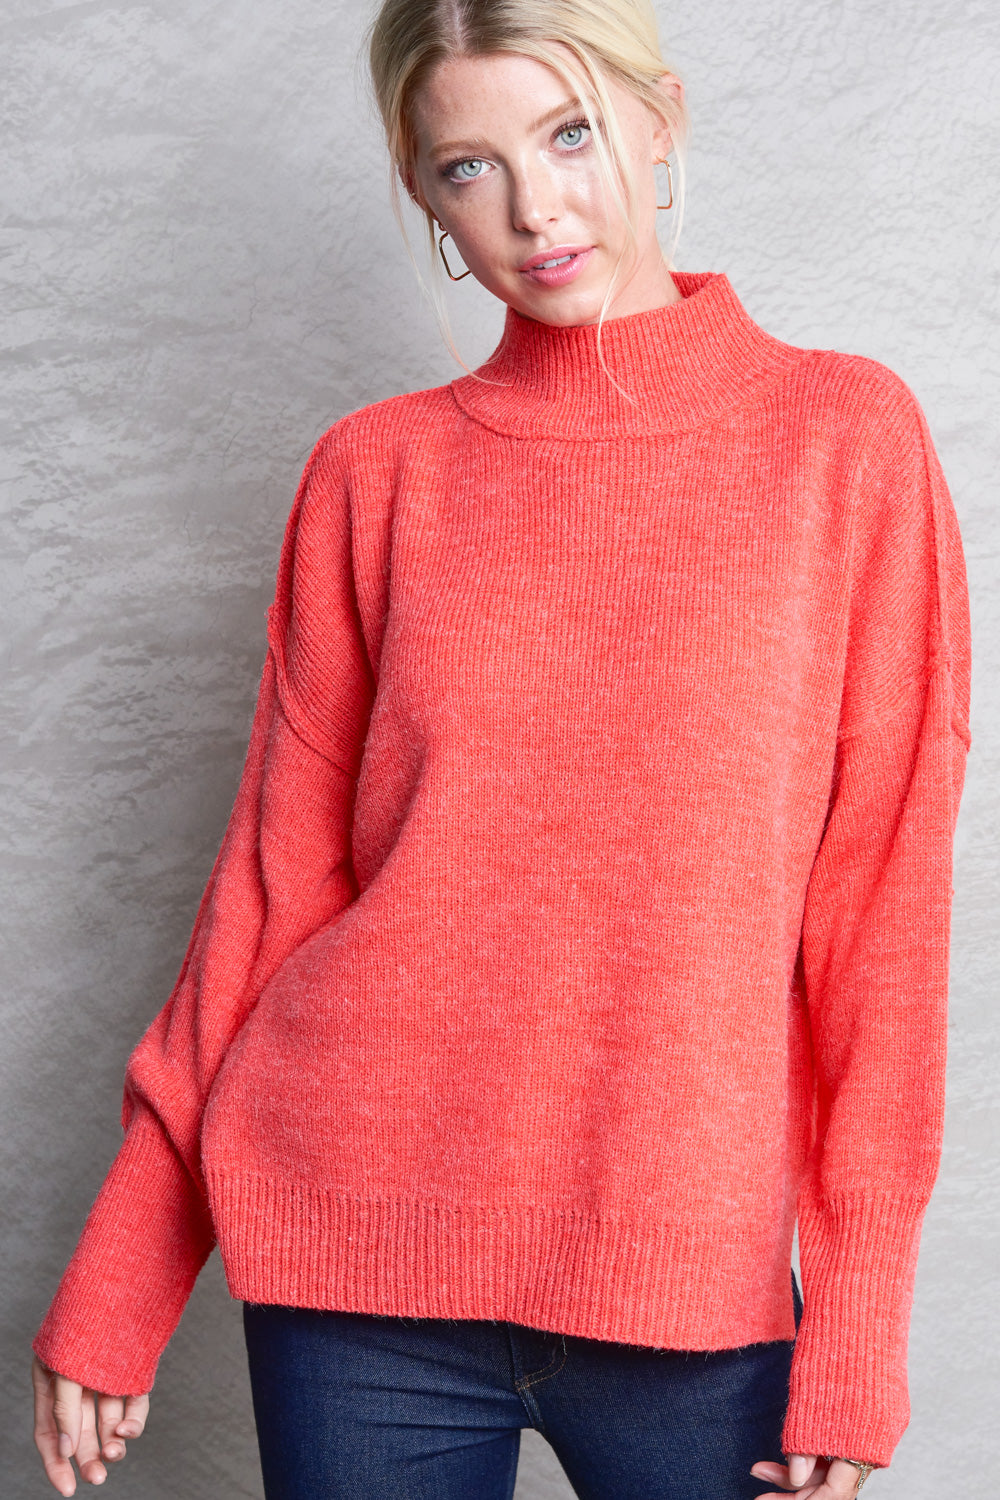 Pink Liberty Winter Breeze Mock-Turtleneck Tunic Sweater Tomato